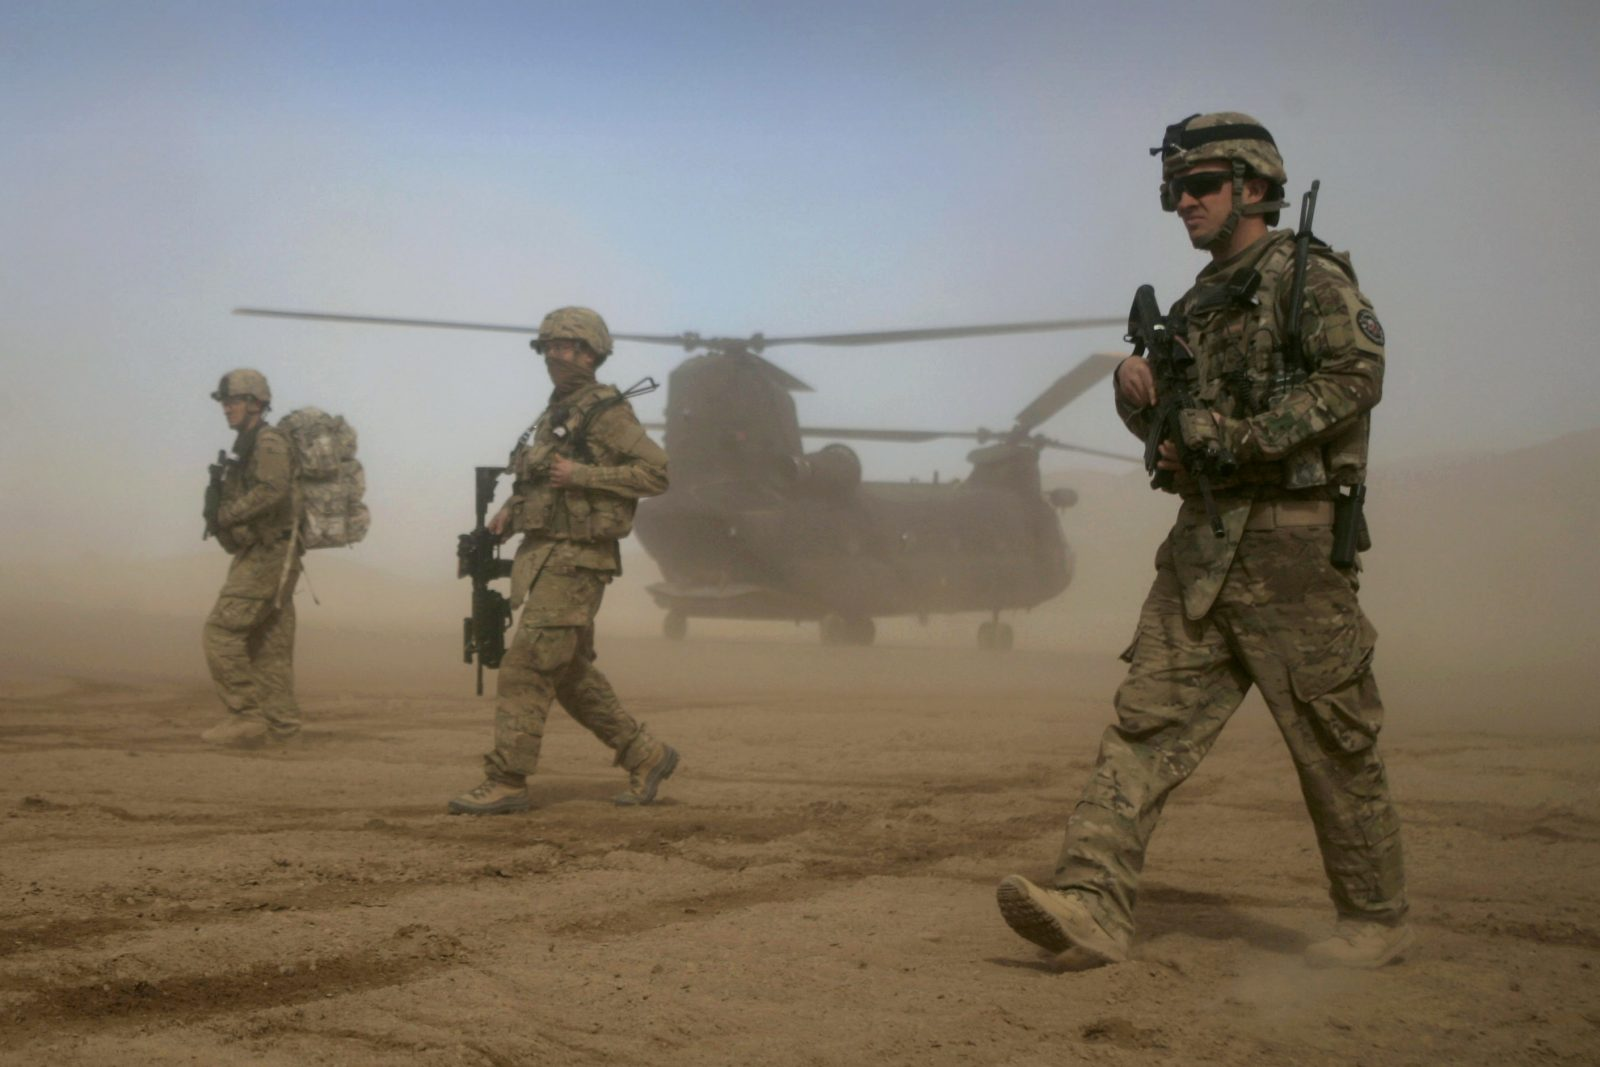 Moving Forward After U.S. Withdrawal in Afghanistan